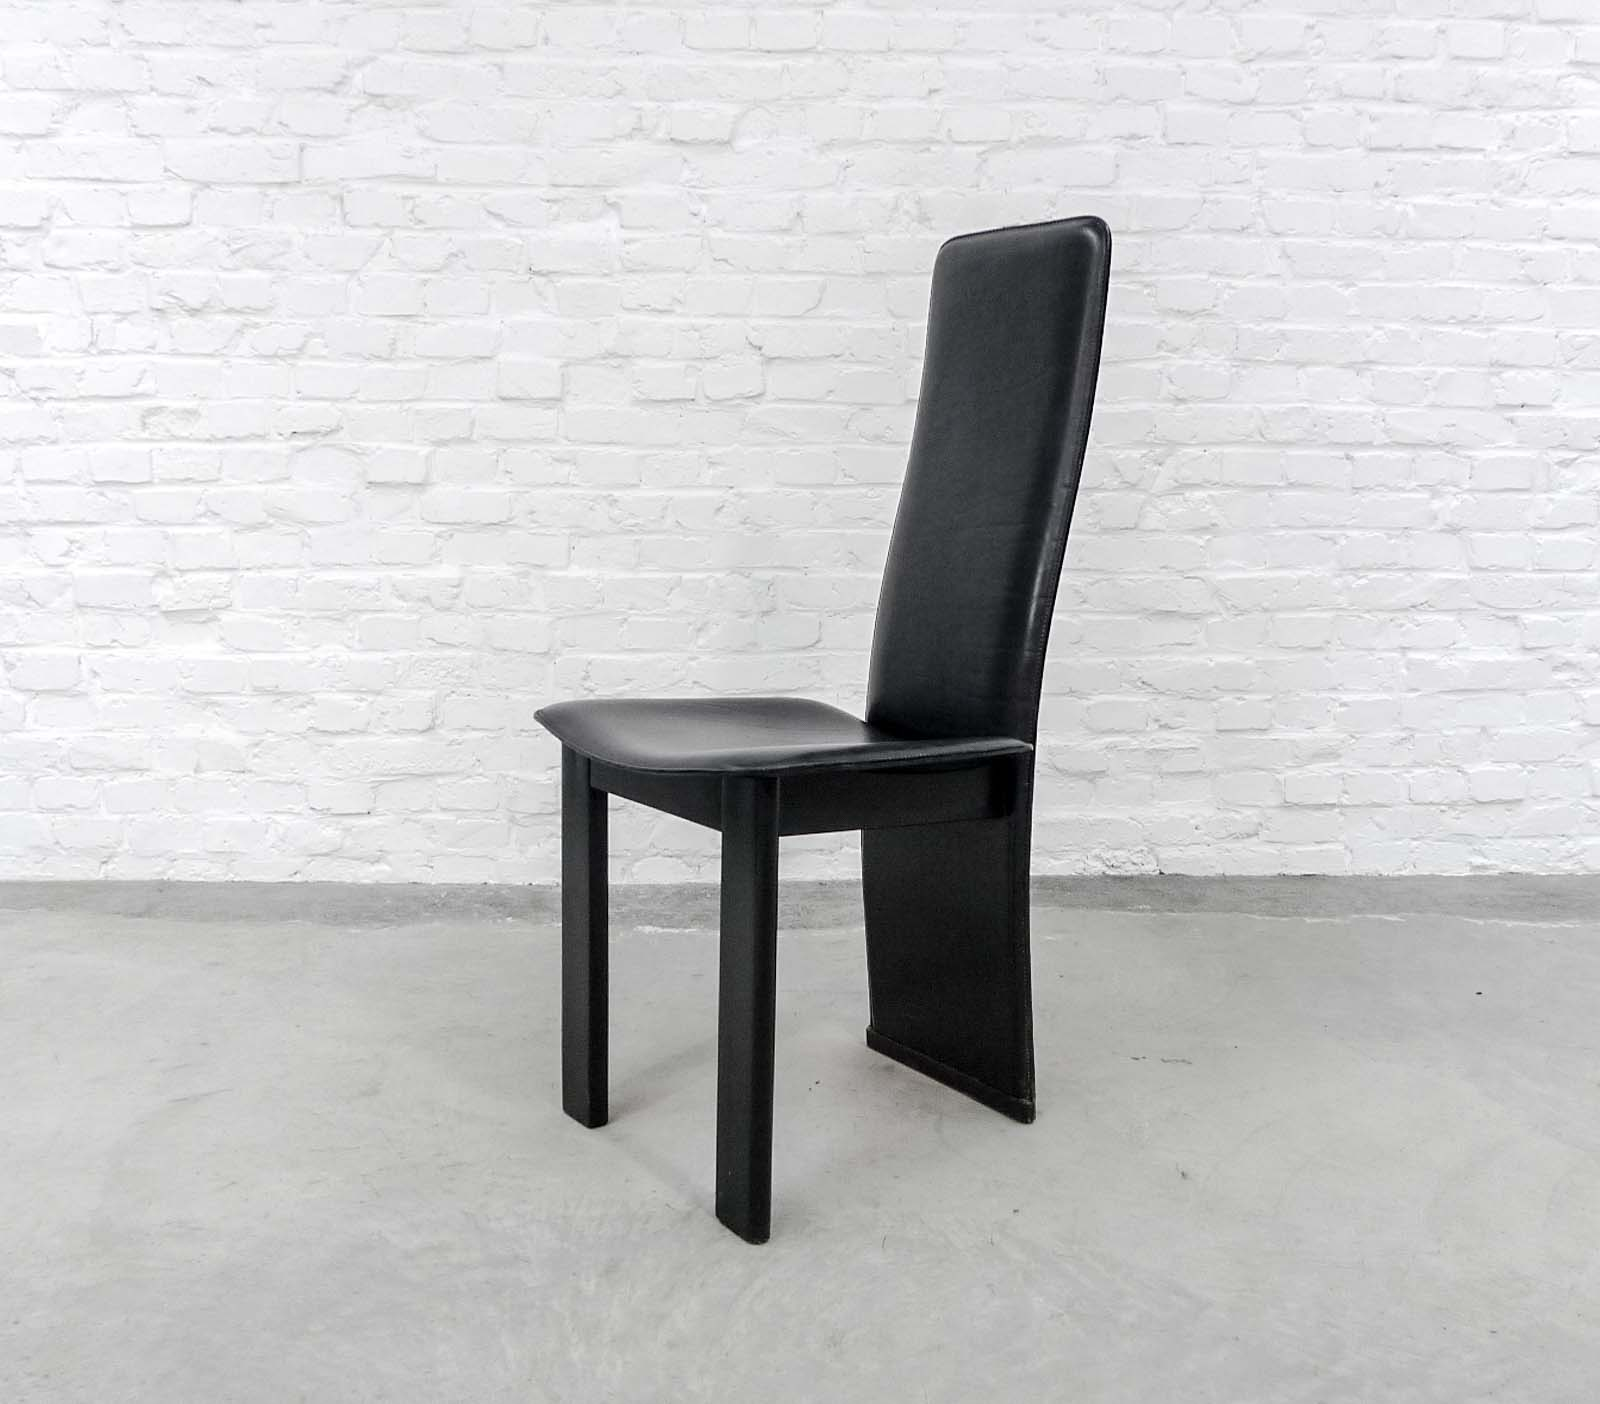 set of 4 mid century black sadle leather high back dining chairs in style of cidue. Black Bedroom Furniture Sets. Home Design Ideas